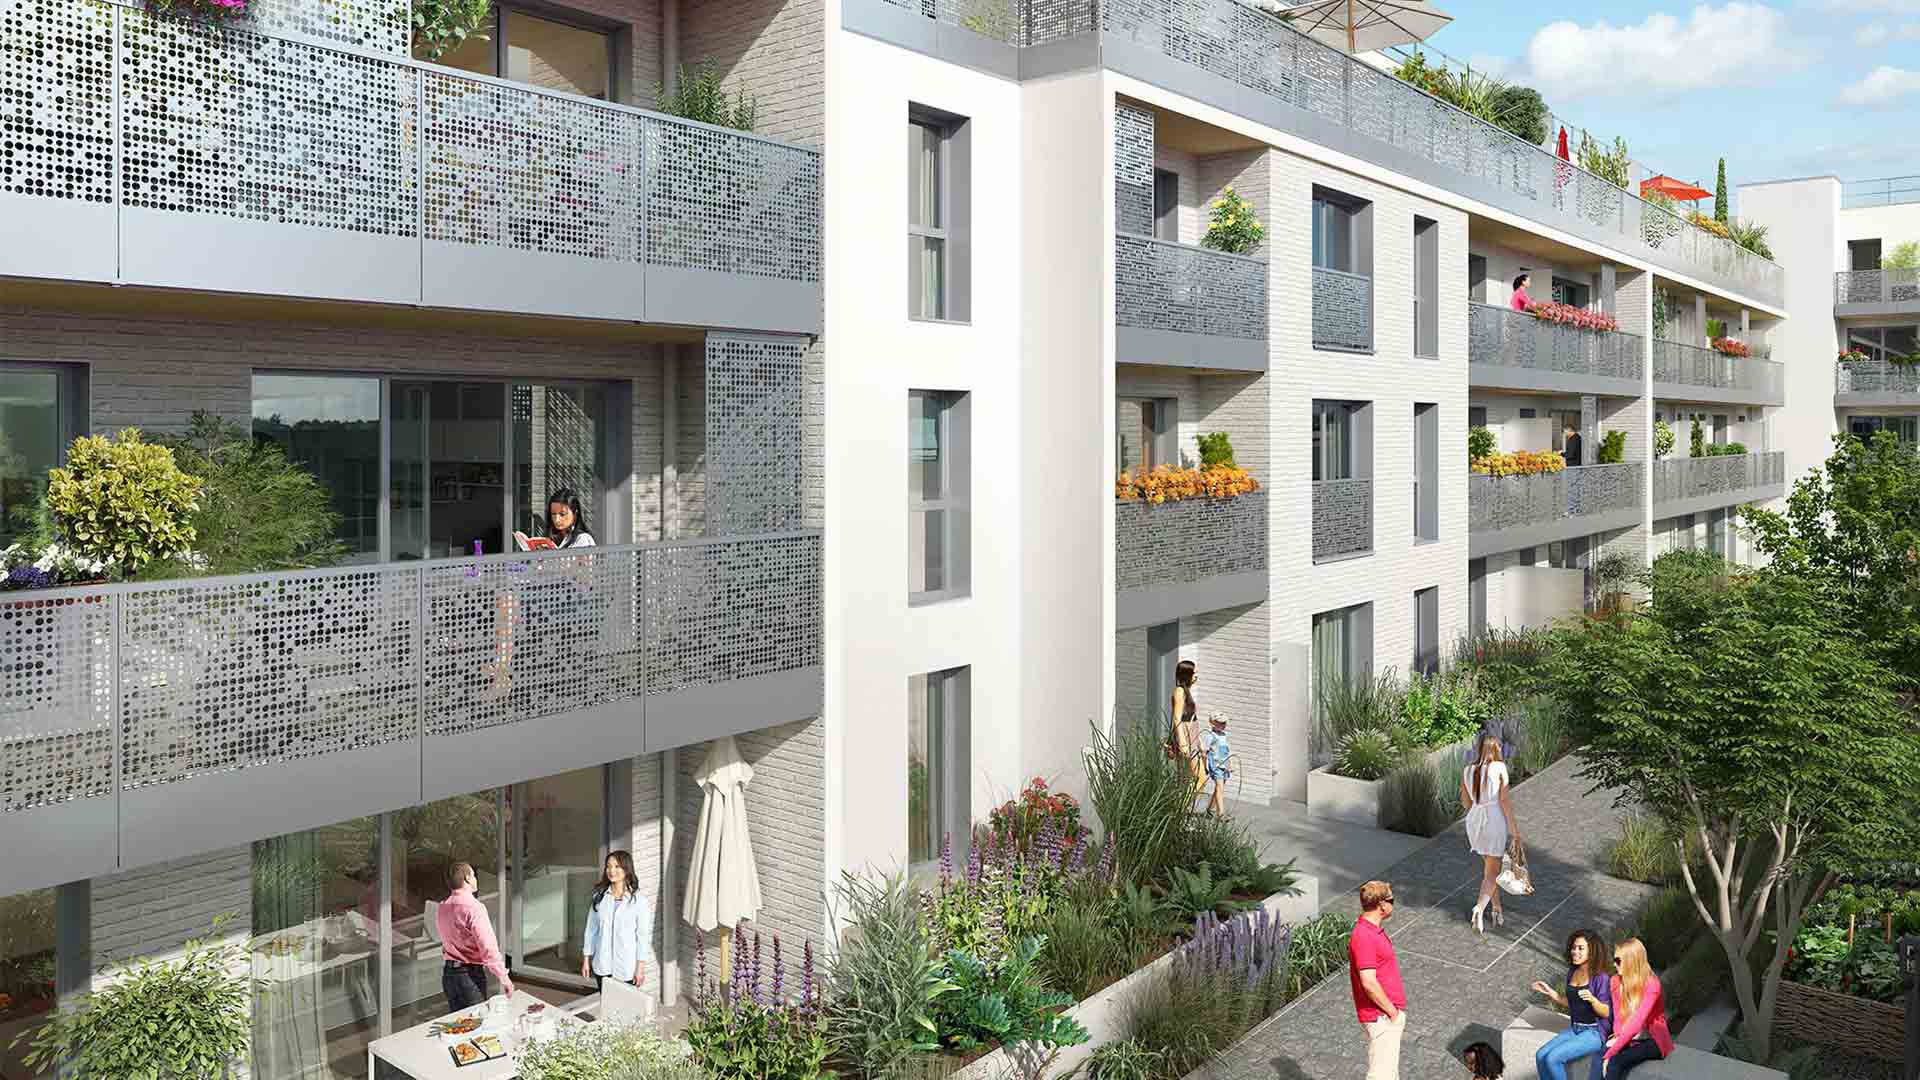 Clos des noyers programme immobilier neuf aubervilliers for Aide achat immobilier neuf